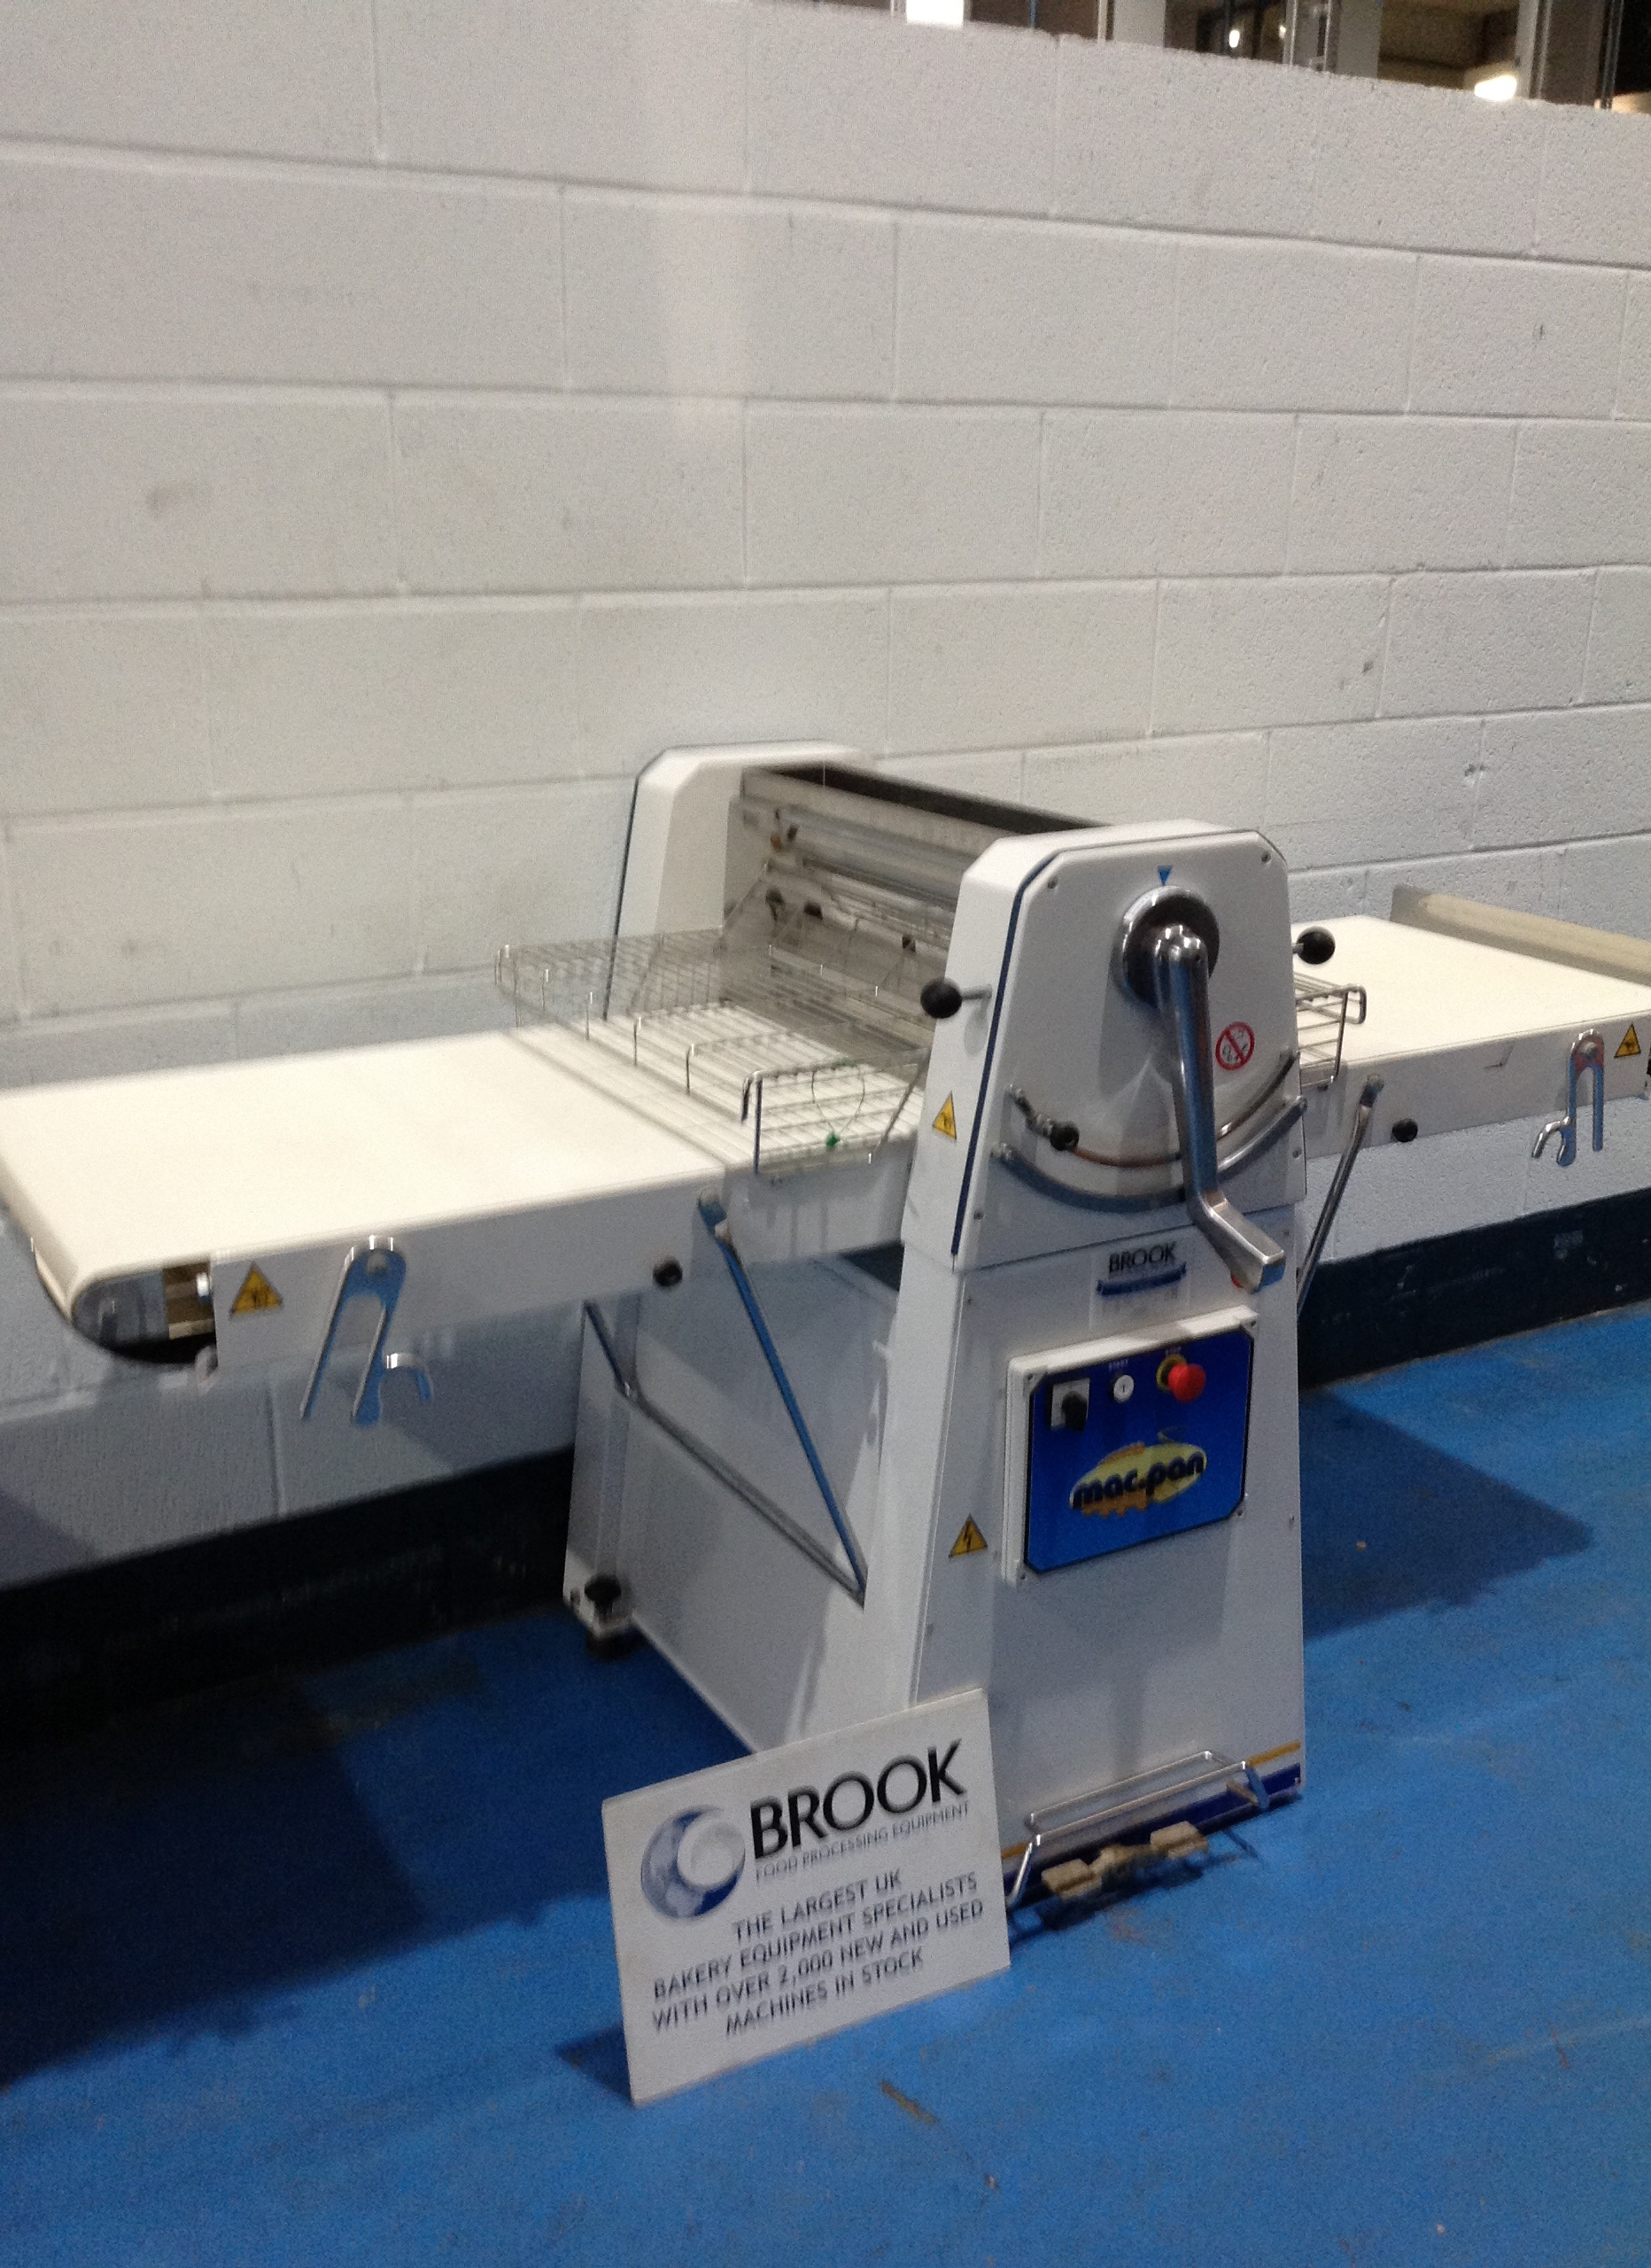 MACPAN FLOOR STANDING PASTRY SHEETER, 500MM WIDE X 1M LONG FOLD UP BELTS, GOOD EX BAKERY, SERVICED